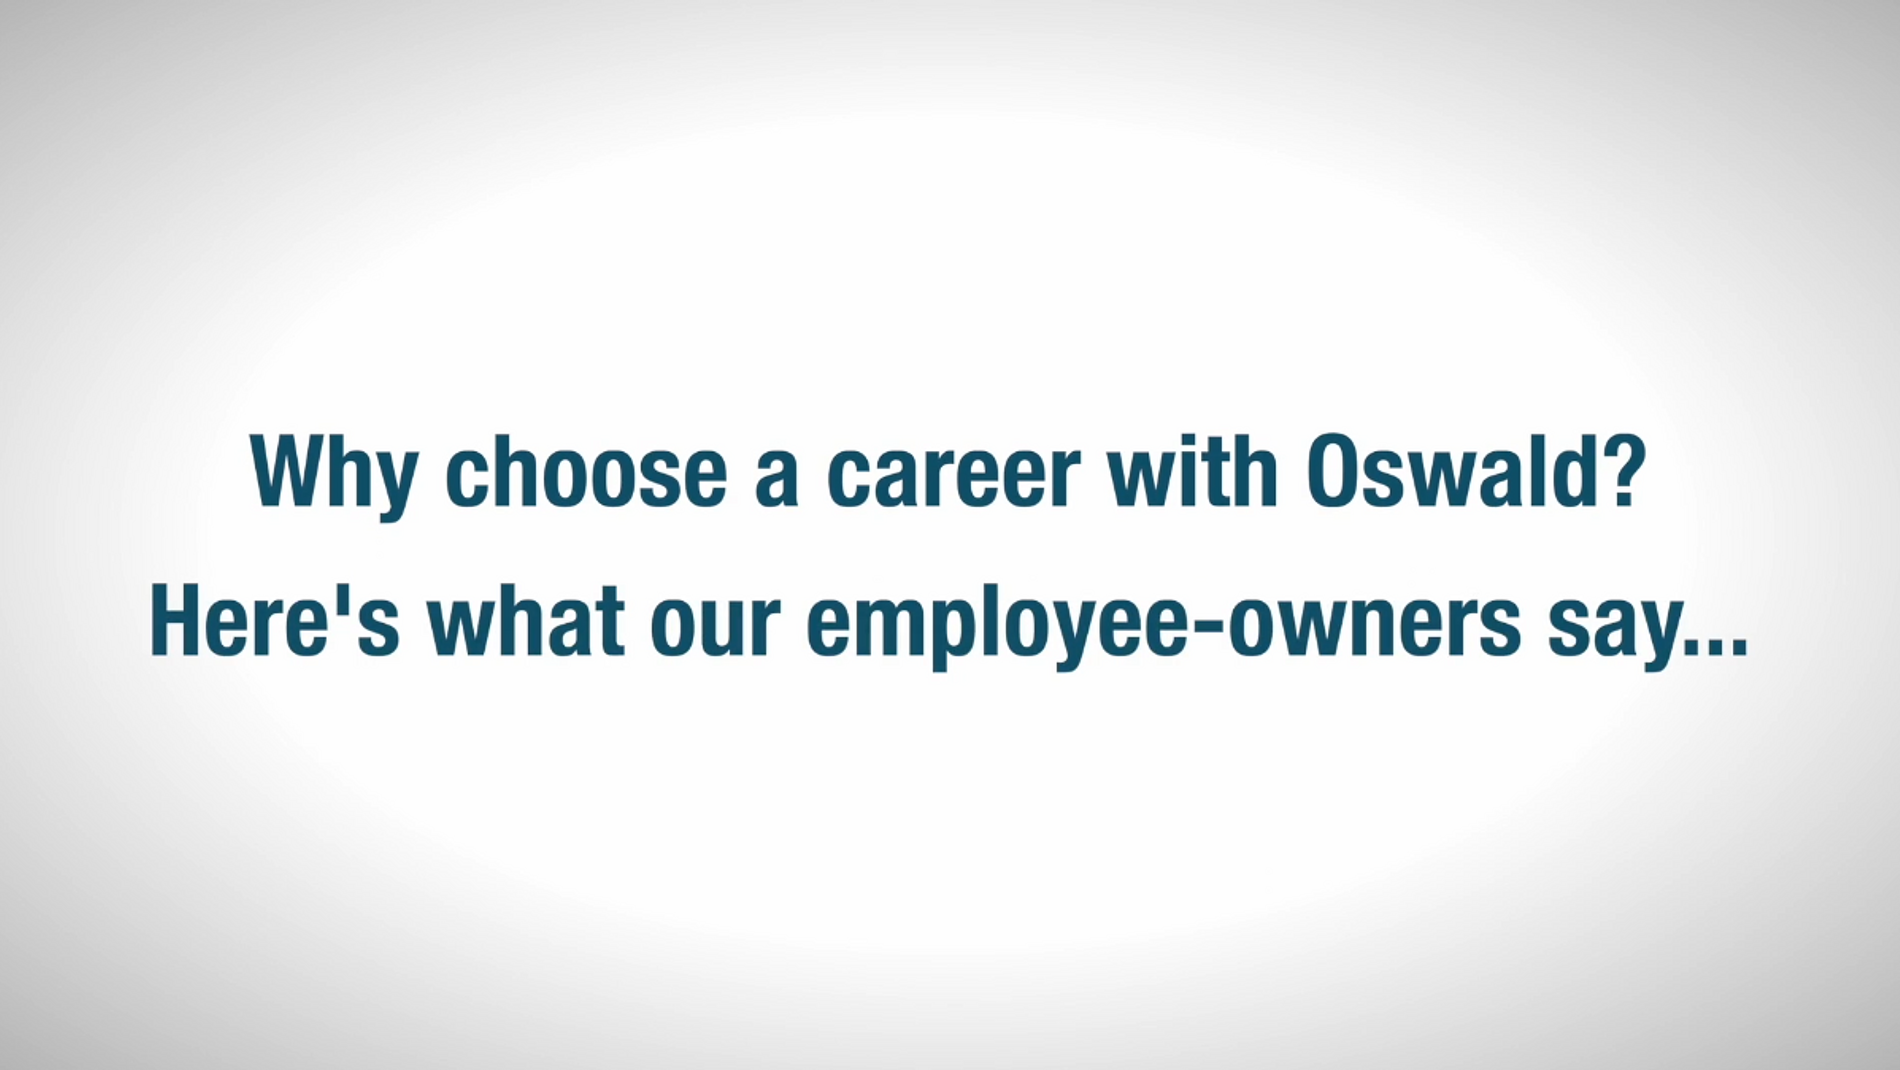 Why choose a career with Oswald